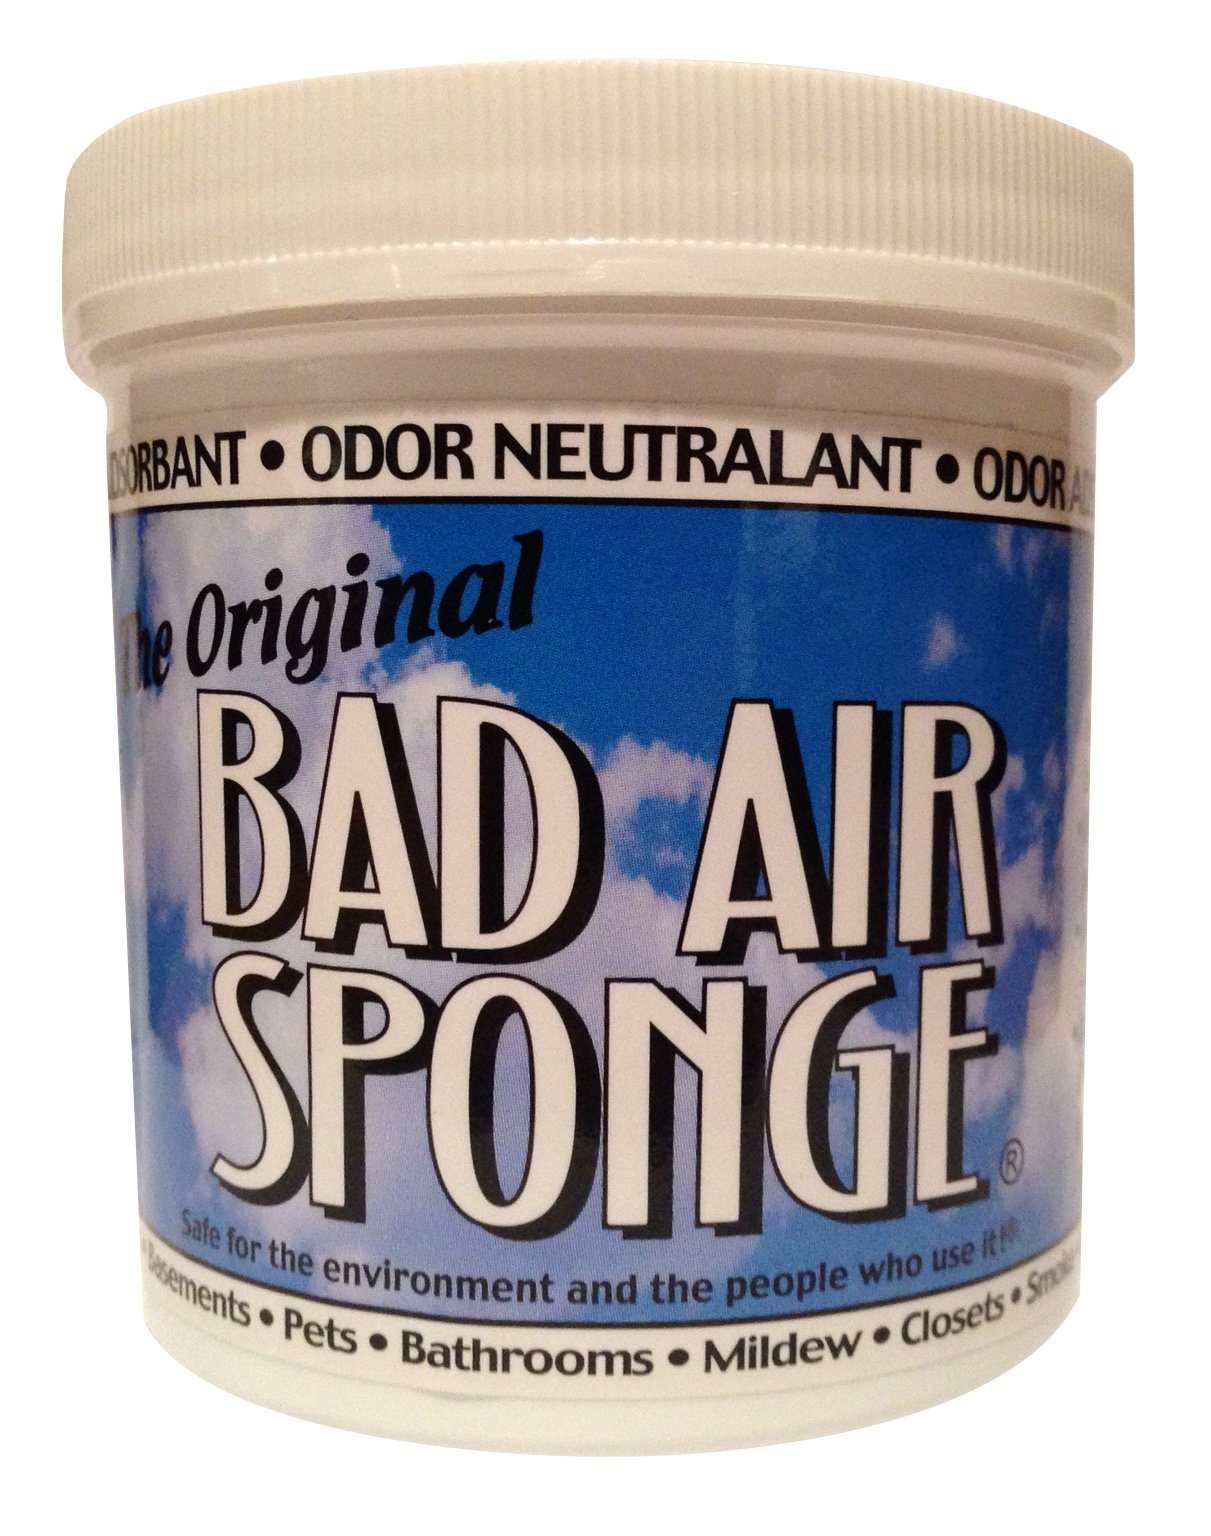 Bad Air Sponge The ORIGINAL Odor Absorbing Neutralant, 14oz(Packaging May Vary)